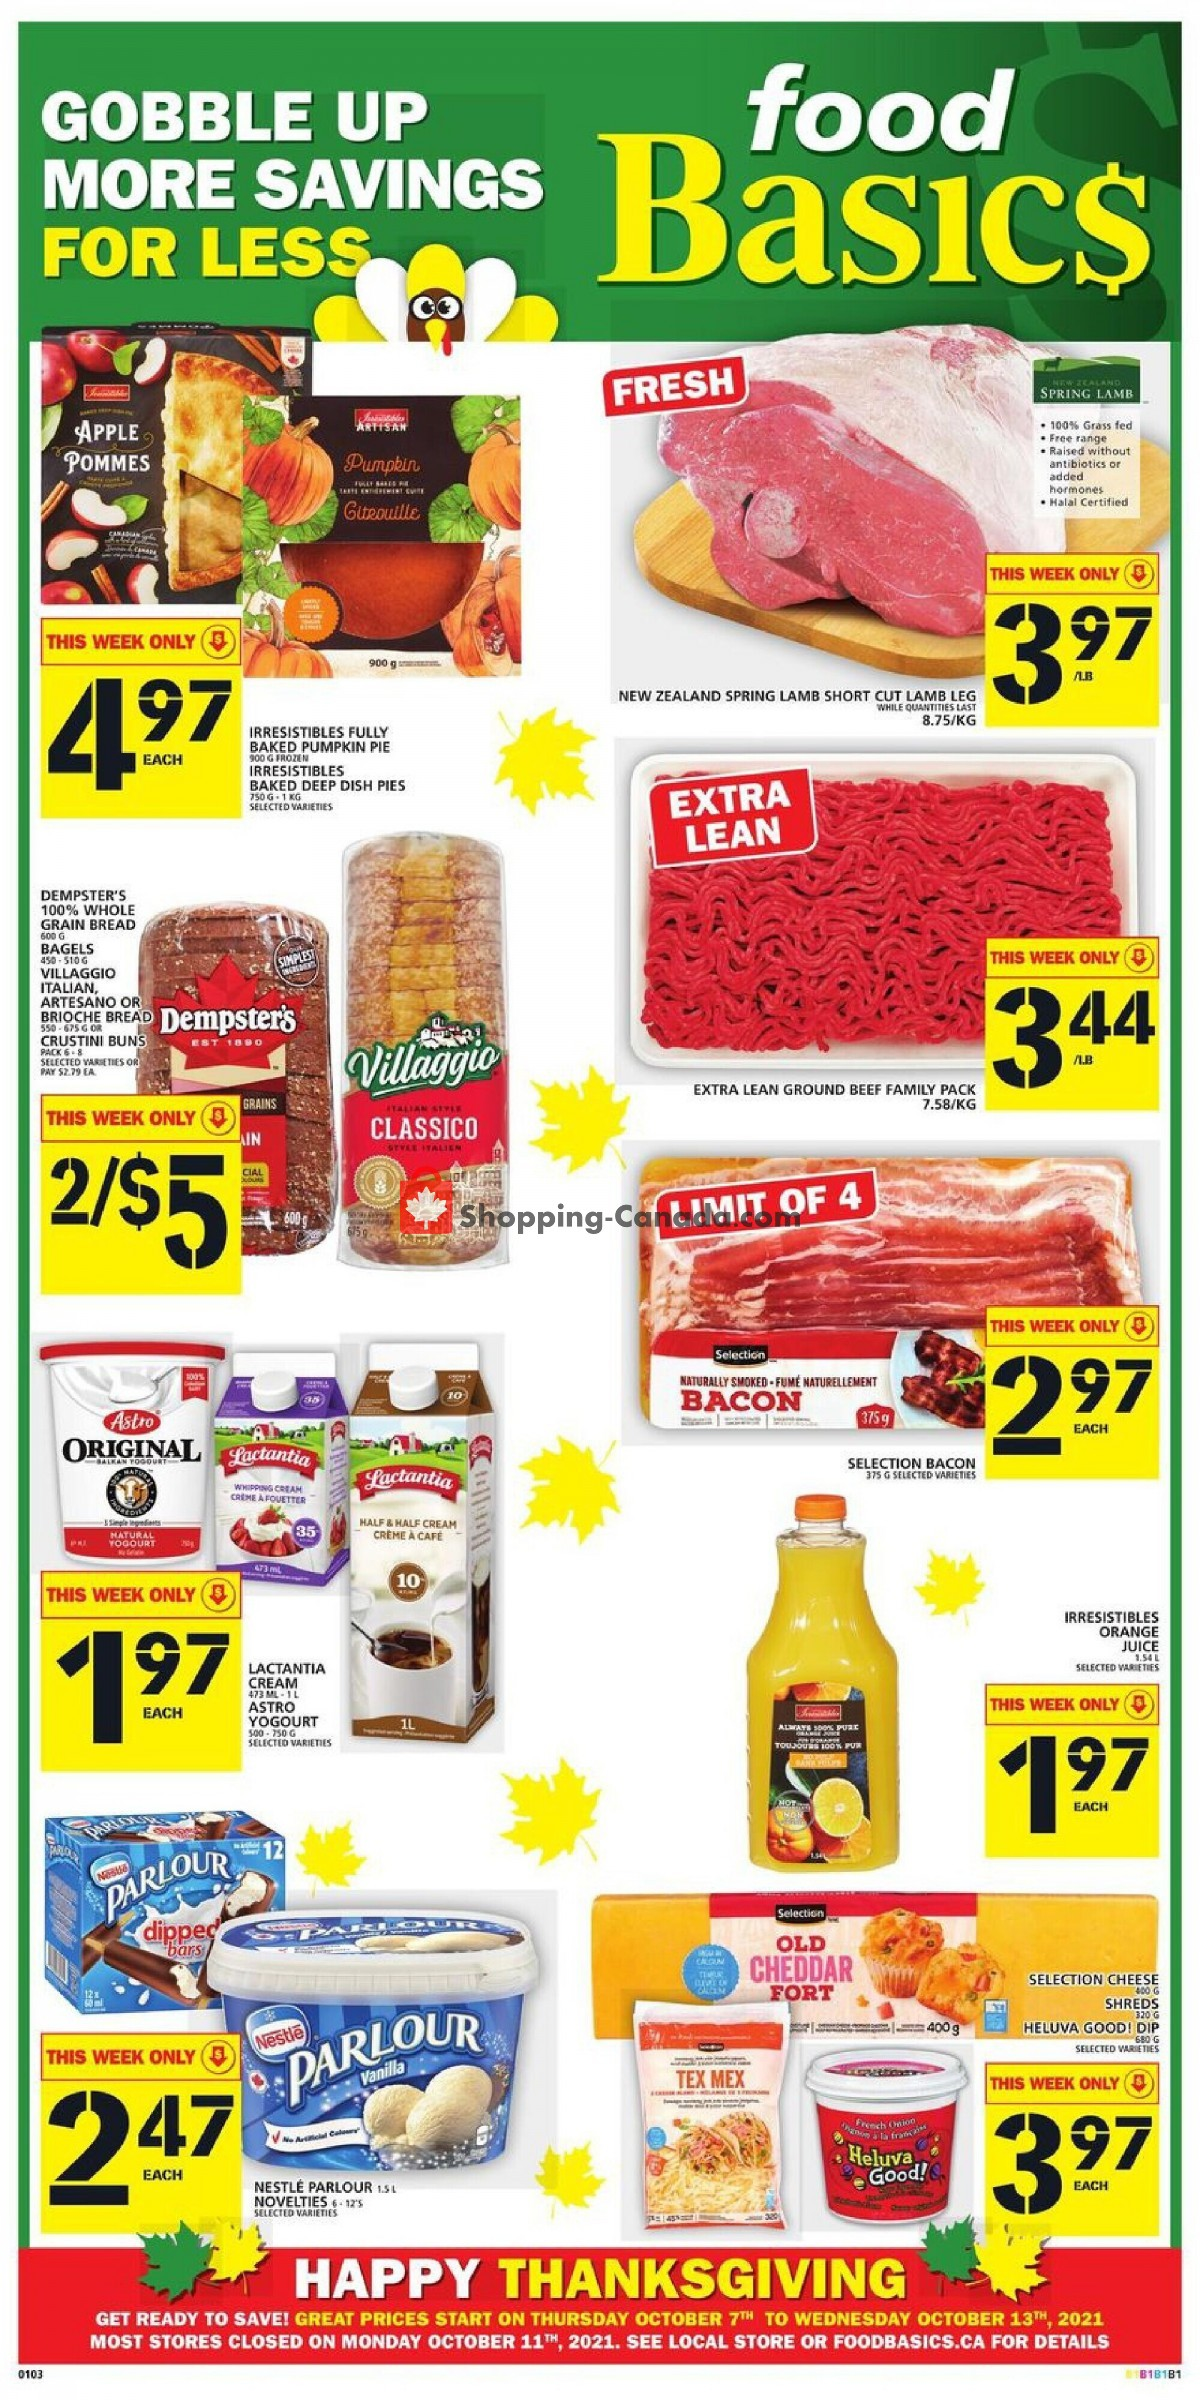 Flyer Food Basics Canada - from Thursday October 7, 2021 to Wednesday October 13, 2021